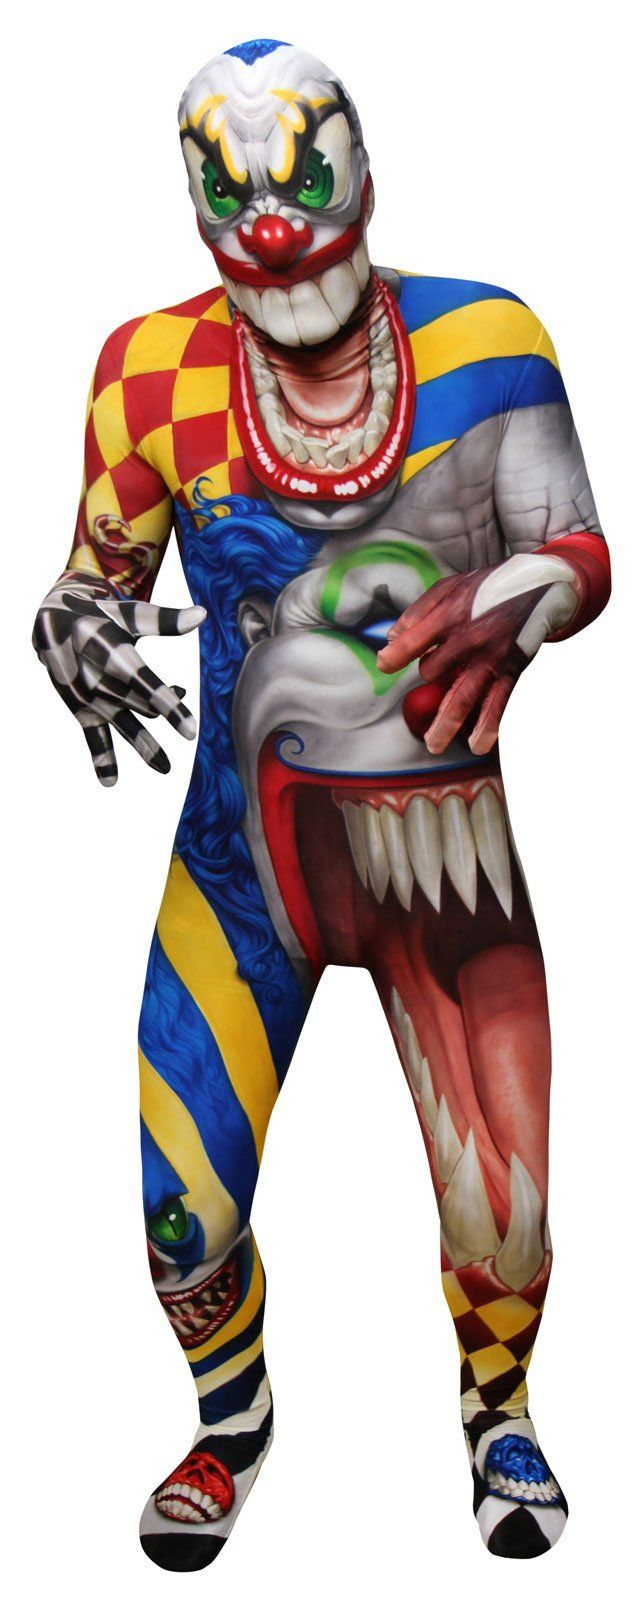 Monster Collection -The Clown Morphsuit Costume For Kids from CostumeExpress.com